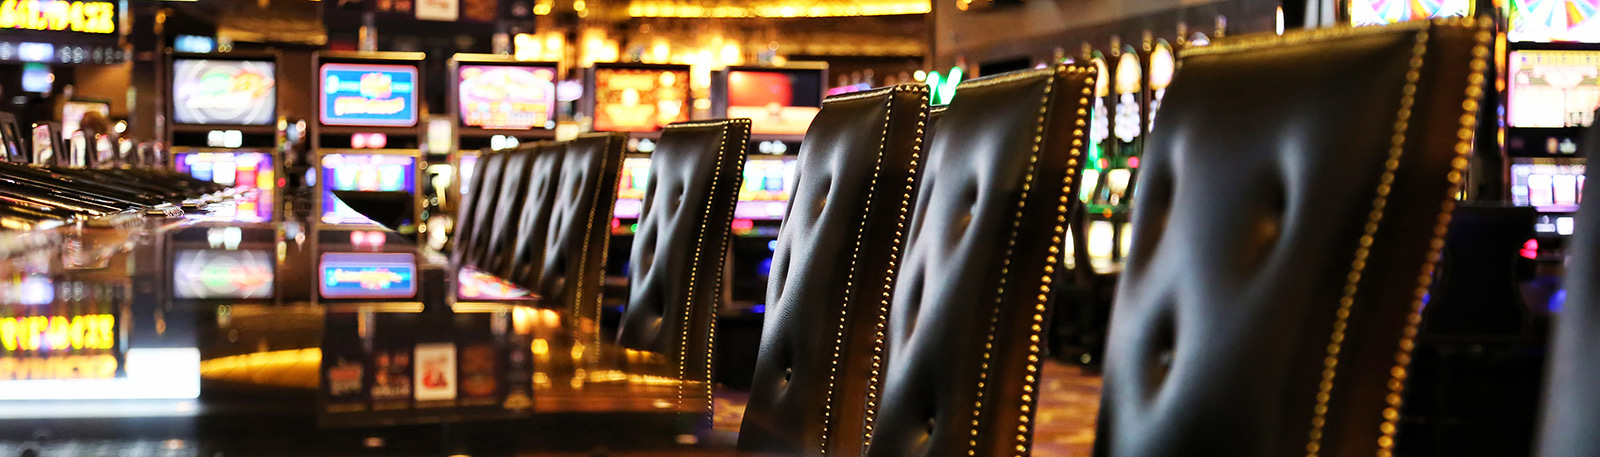 Las Vegas Tipping Guide: How to Tip Fairly Without Spending Too Much